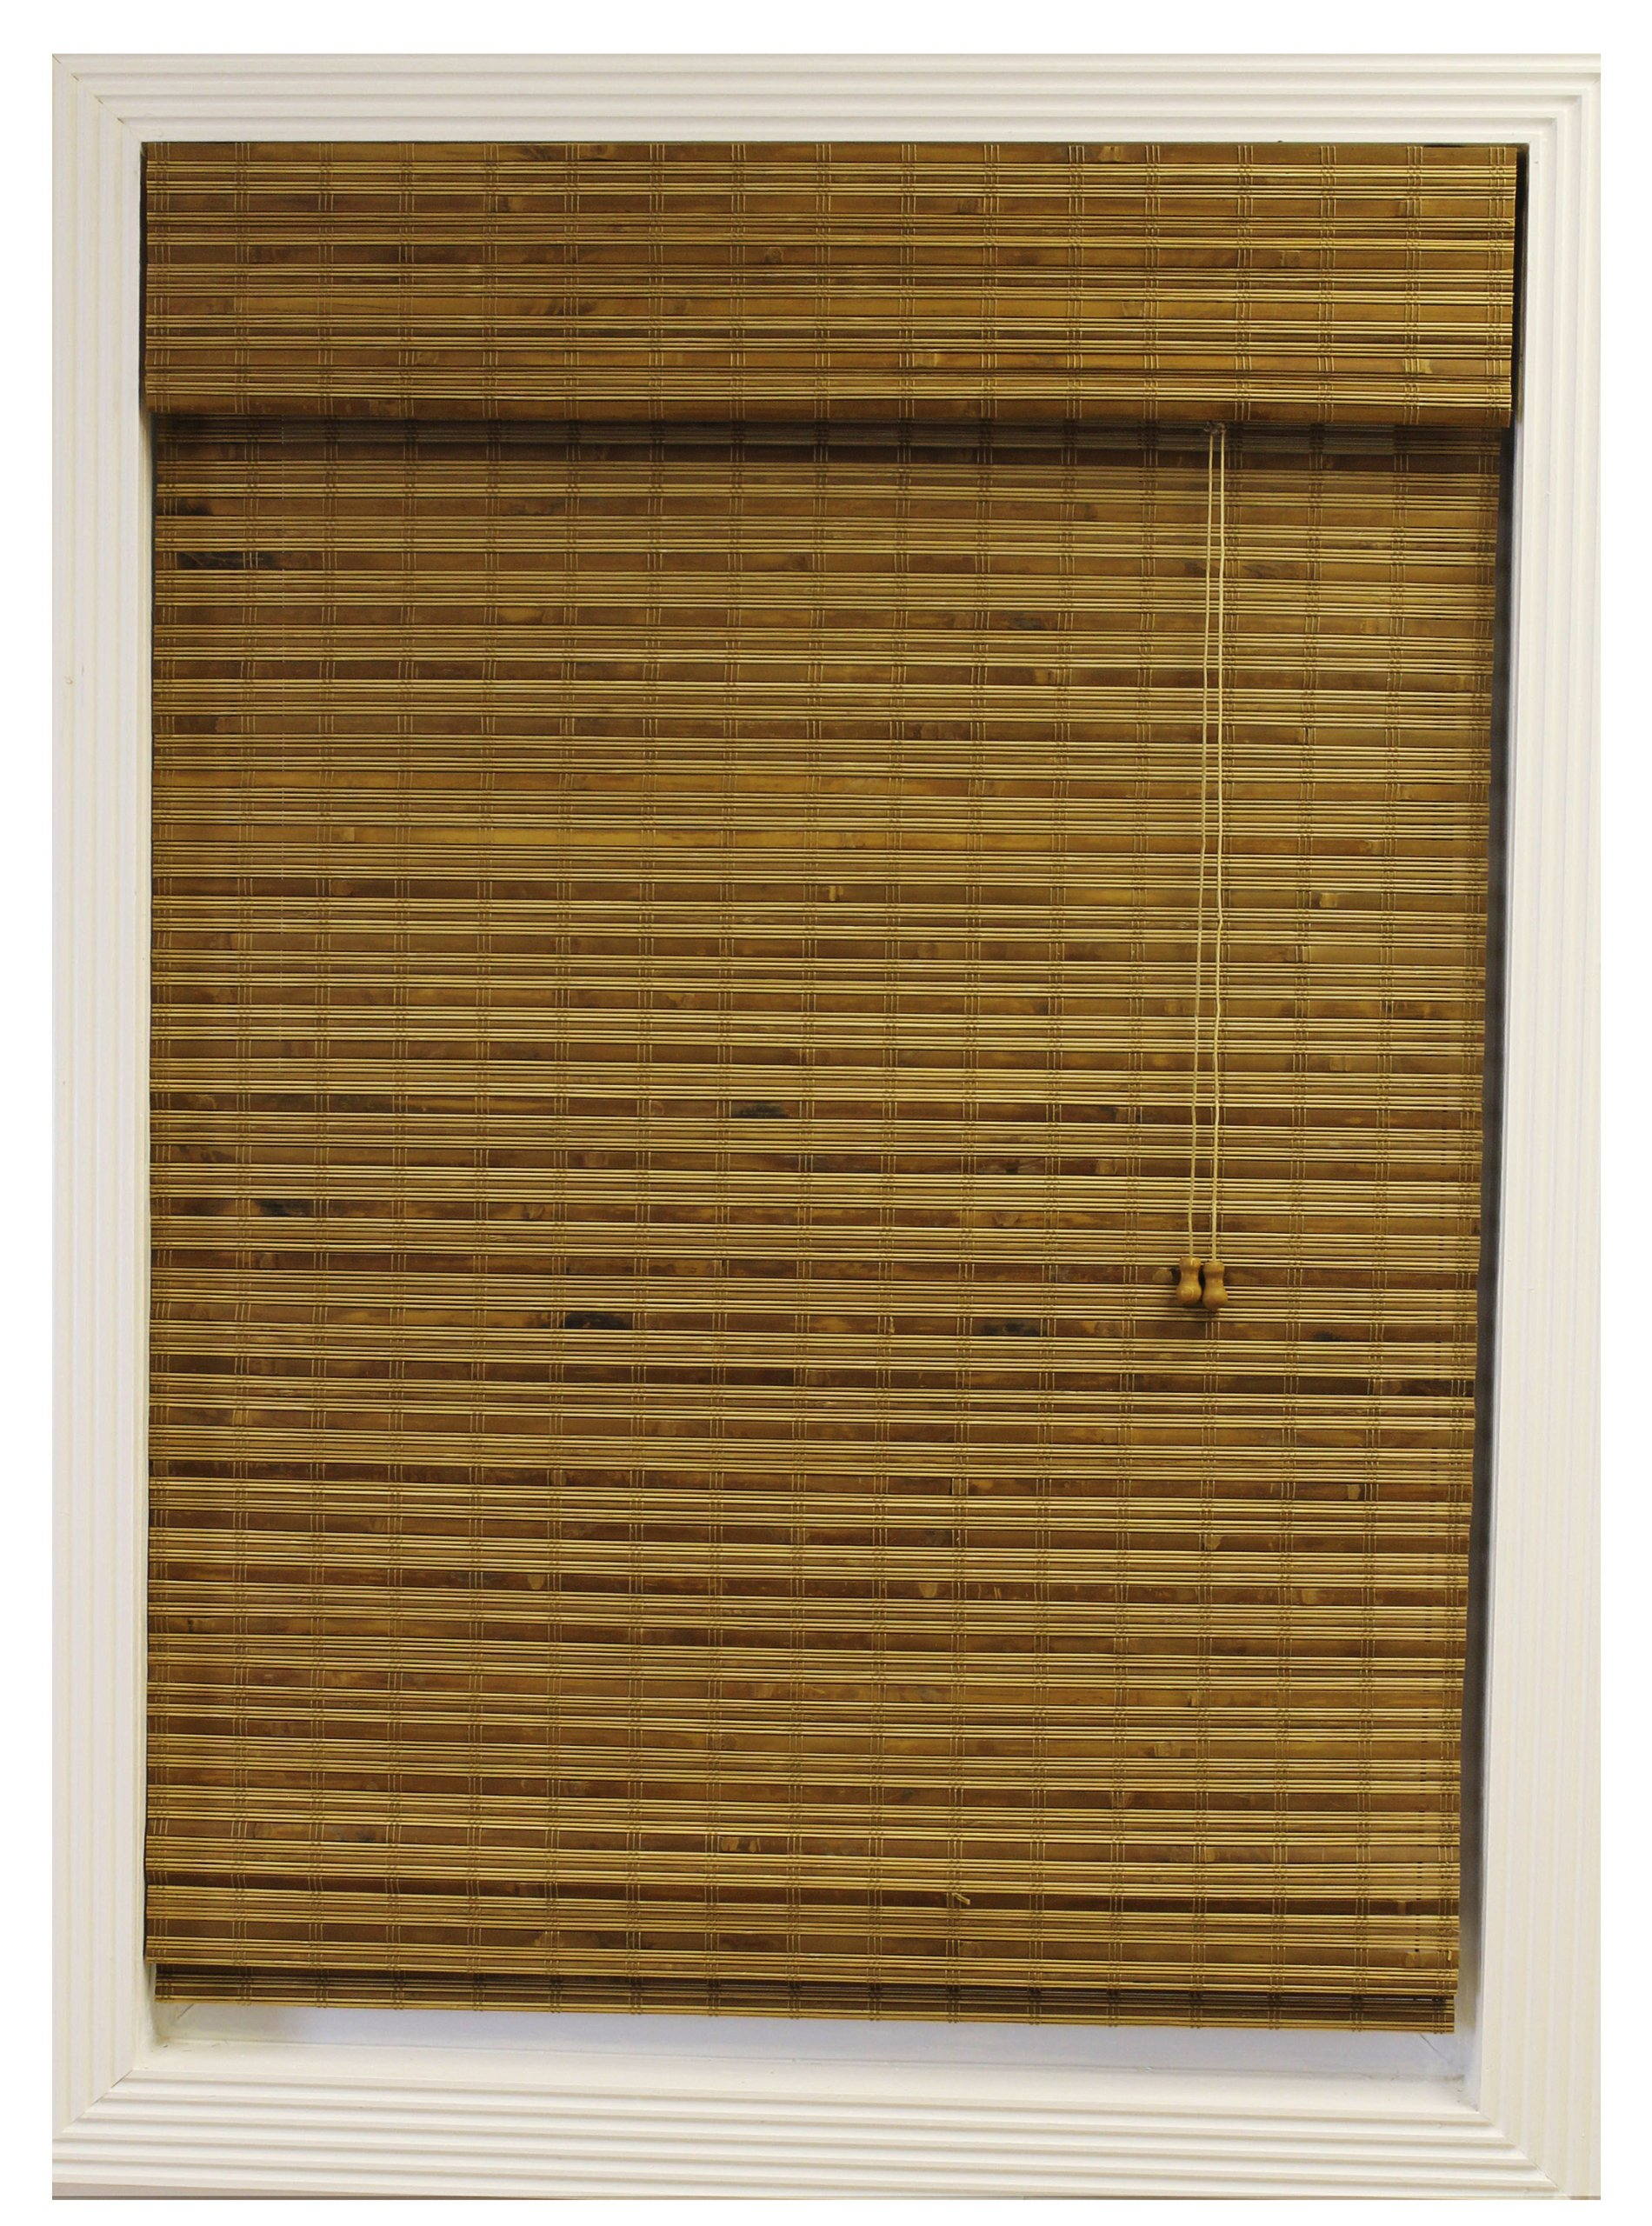 Calyx Interiors Bamboo Roman Shade, 58-Inch Width by 74-Inch Height, Dali Natural